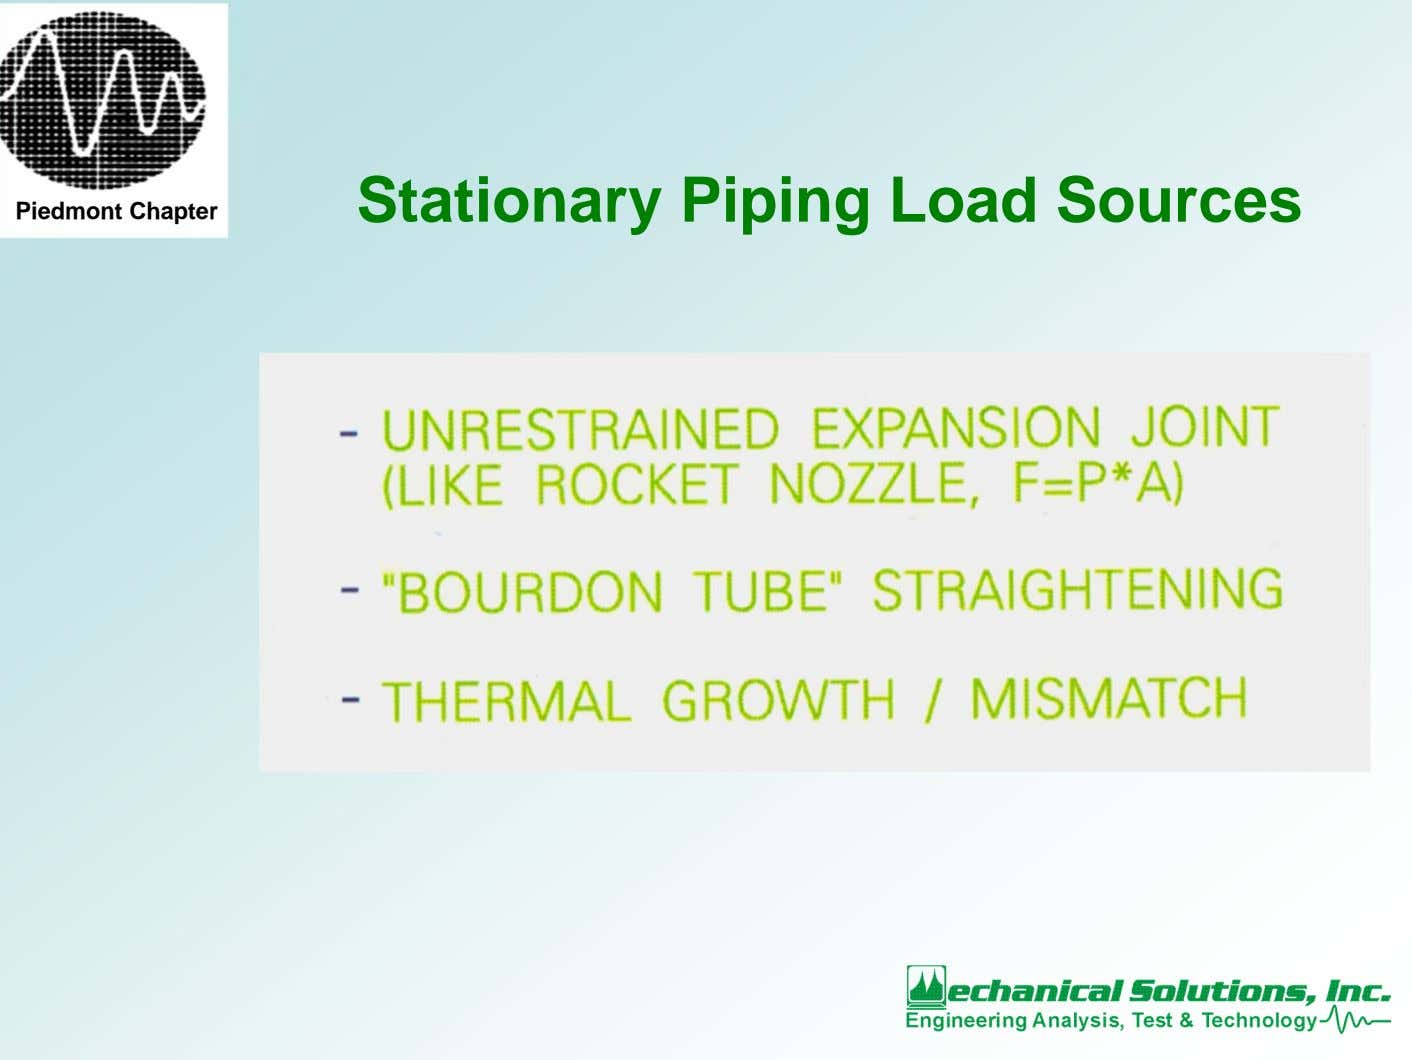 Stationary Piping Load Sources Piedmont Chapter